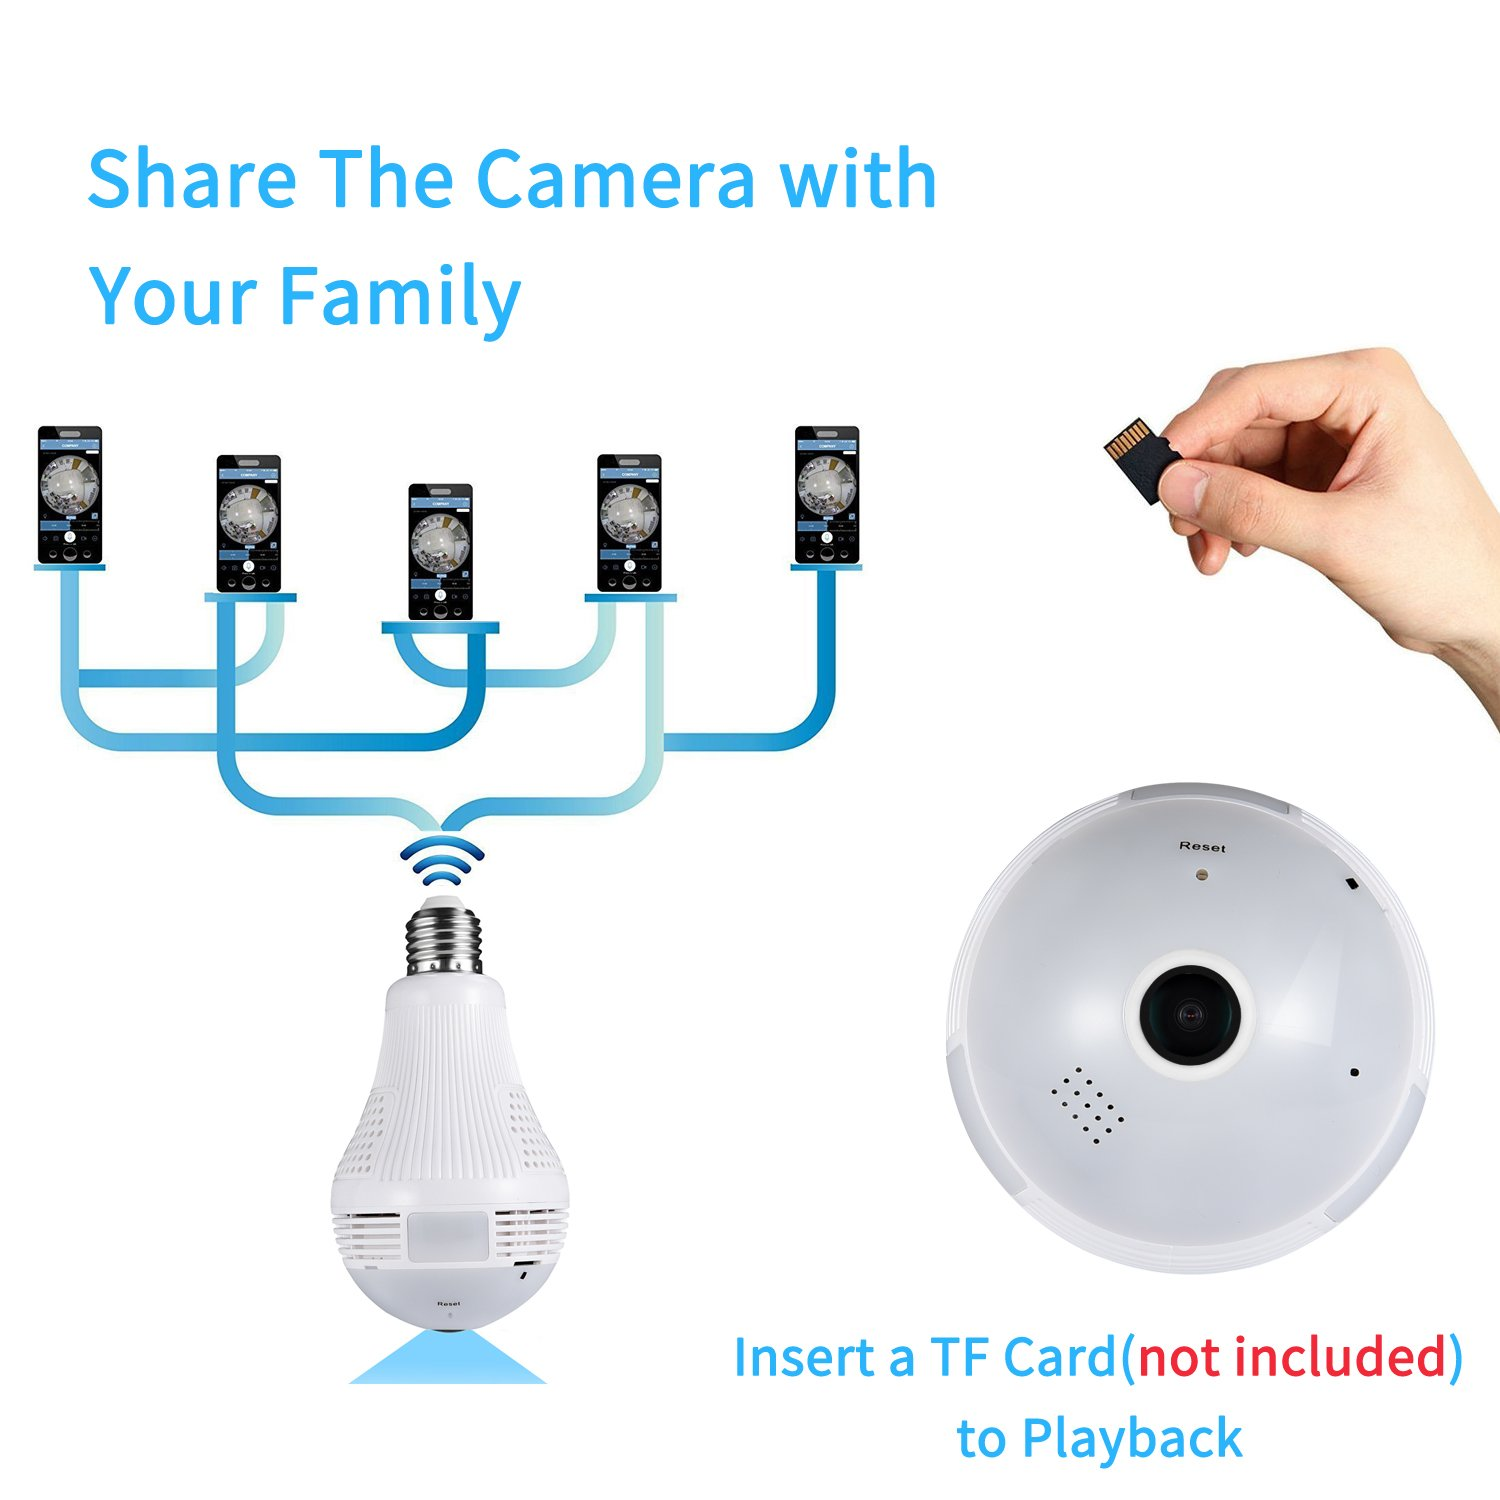 360 Degree Panoramic Camera WiFi IP Bulb Camera 960P Fisheye Lens Home Security Camera System Wireless Camera for Kids & Pets Monitor with iOS/Android App Easy Installation for Large Area Monitoring by Mykit (Image #5)